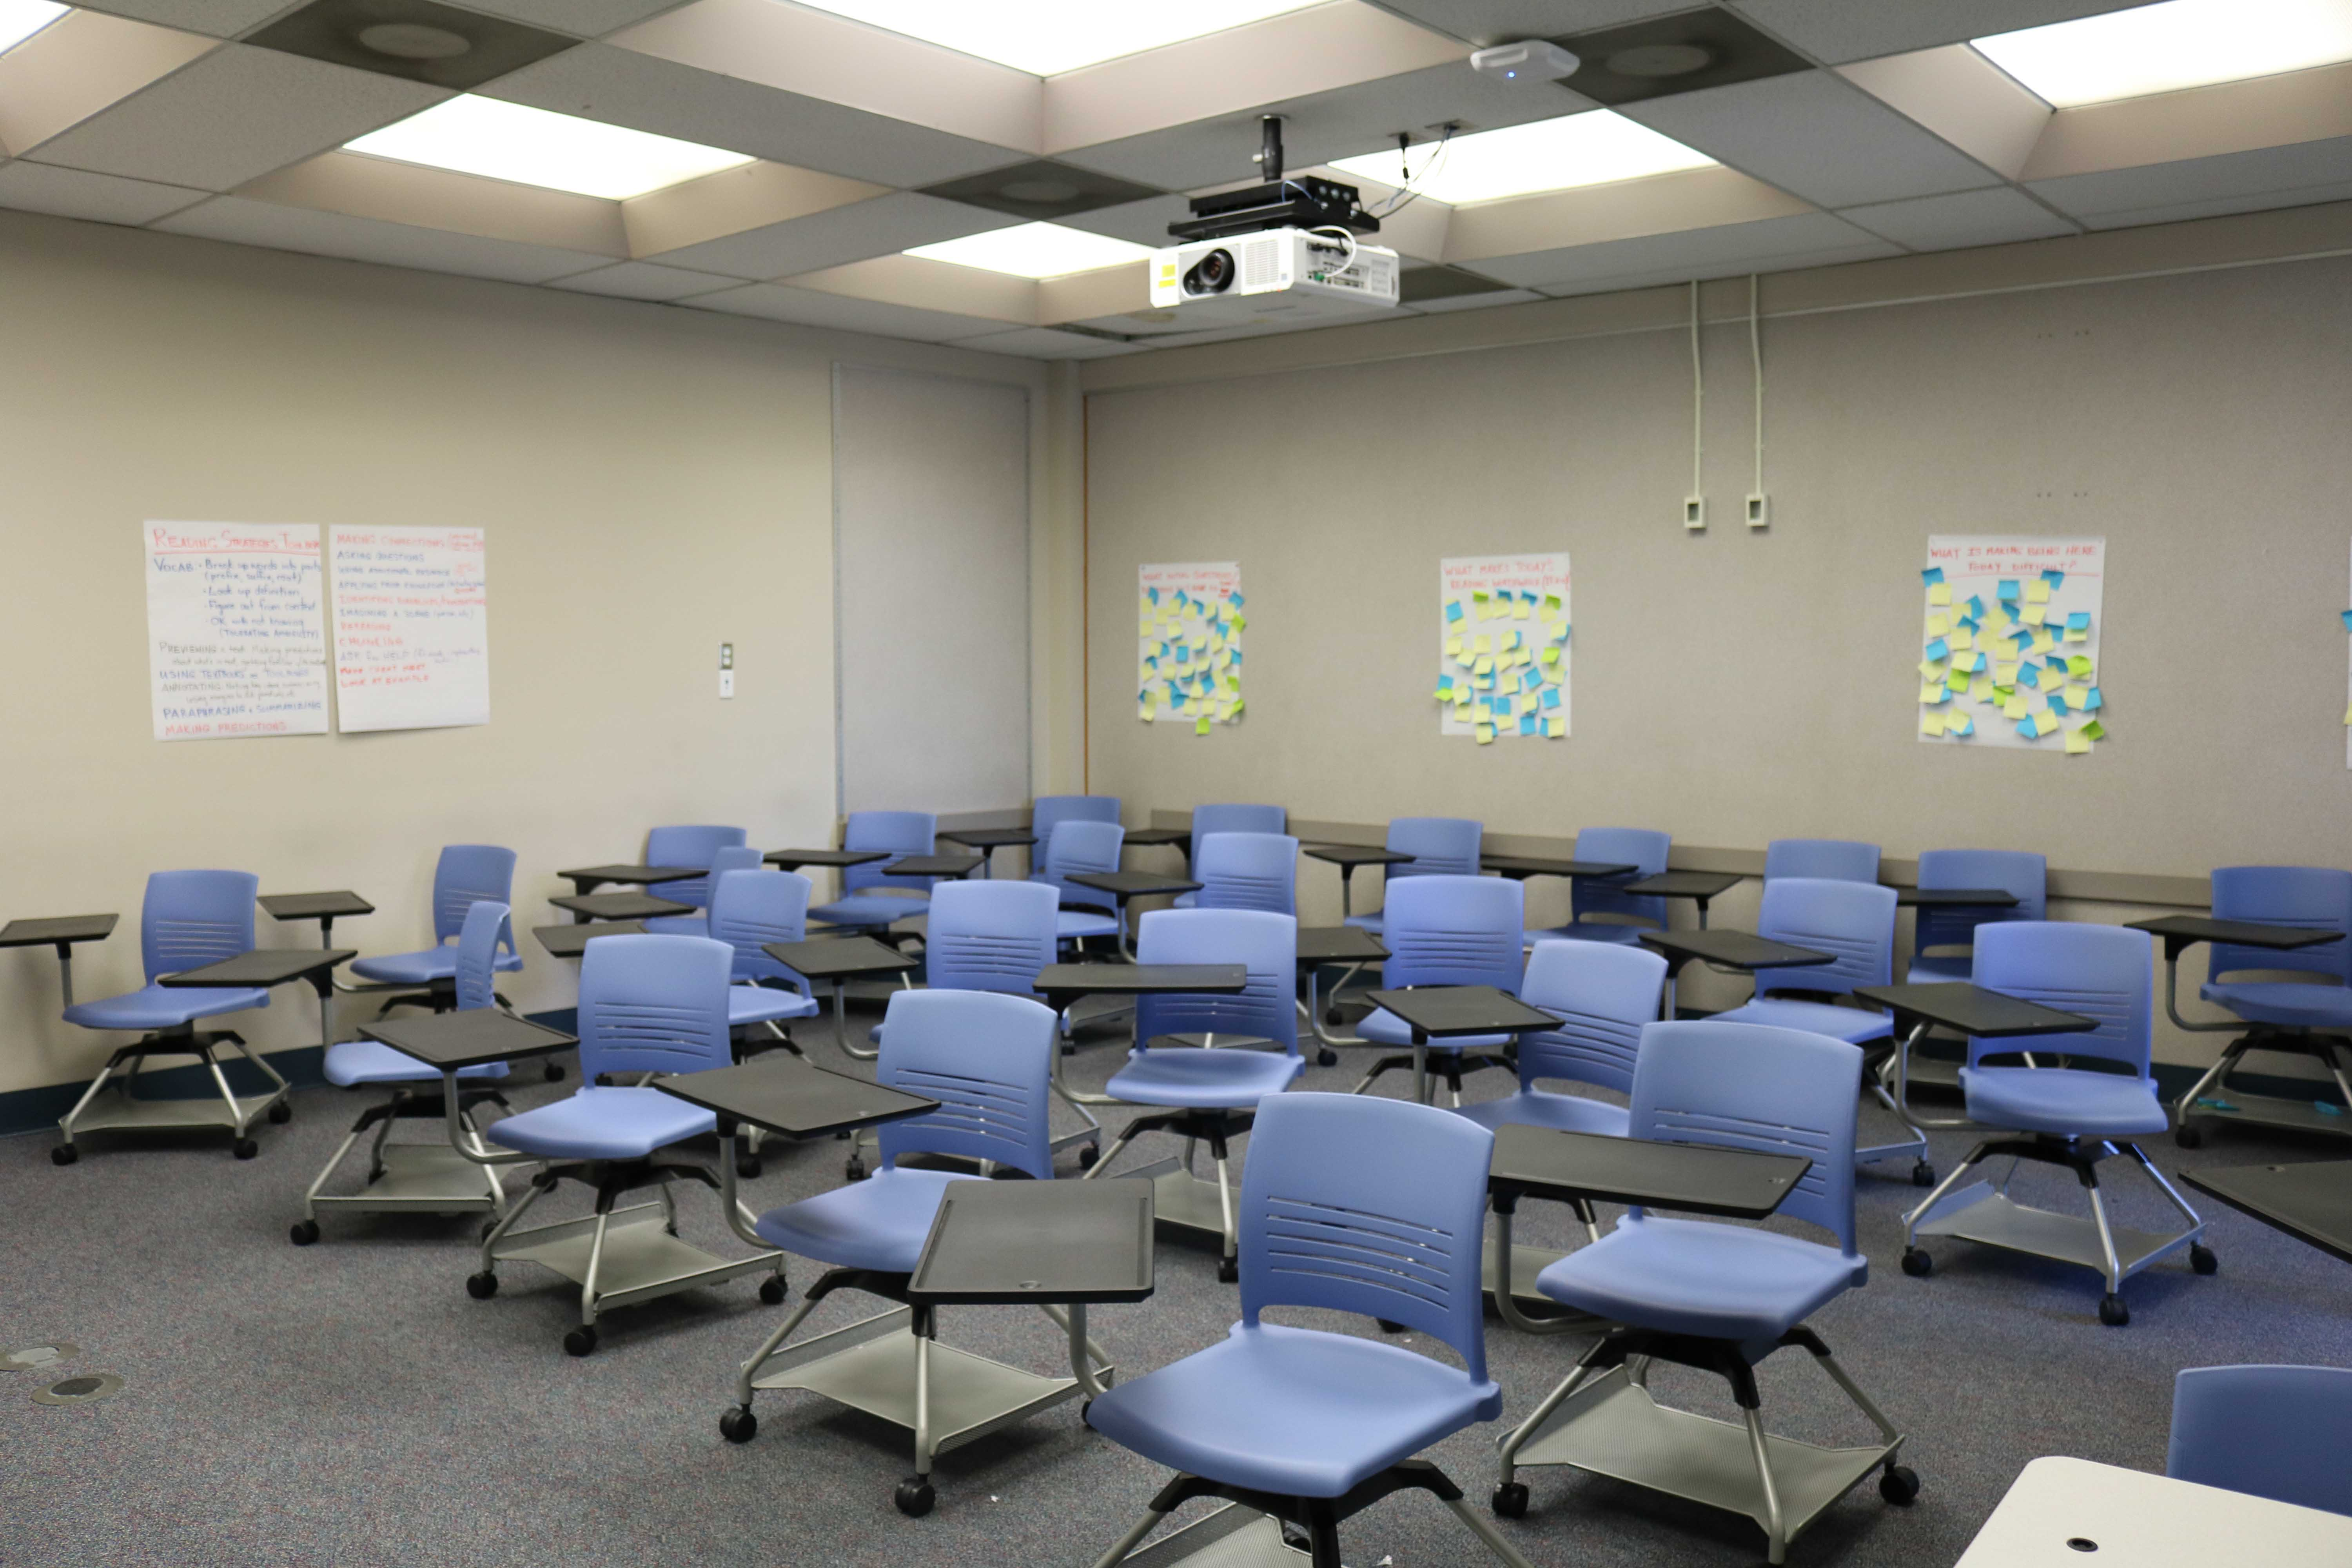 New classroom seating arrangements emphasizes flexibility. Desks and chairs on wheels can be configured for group or individual use.